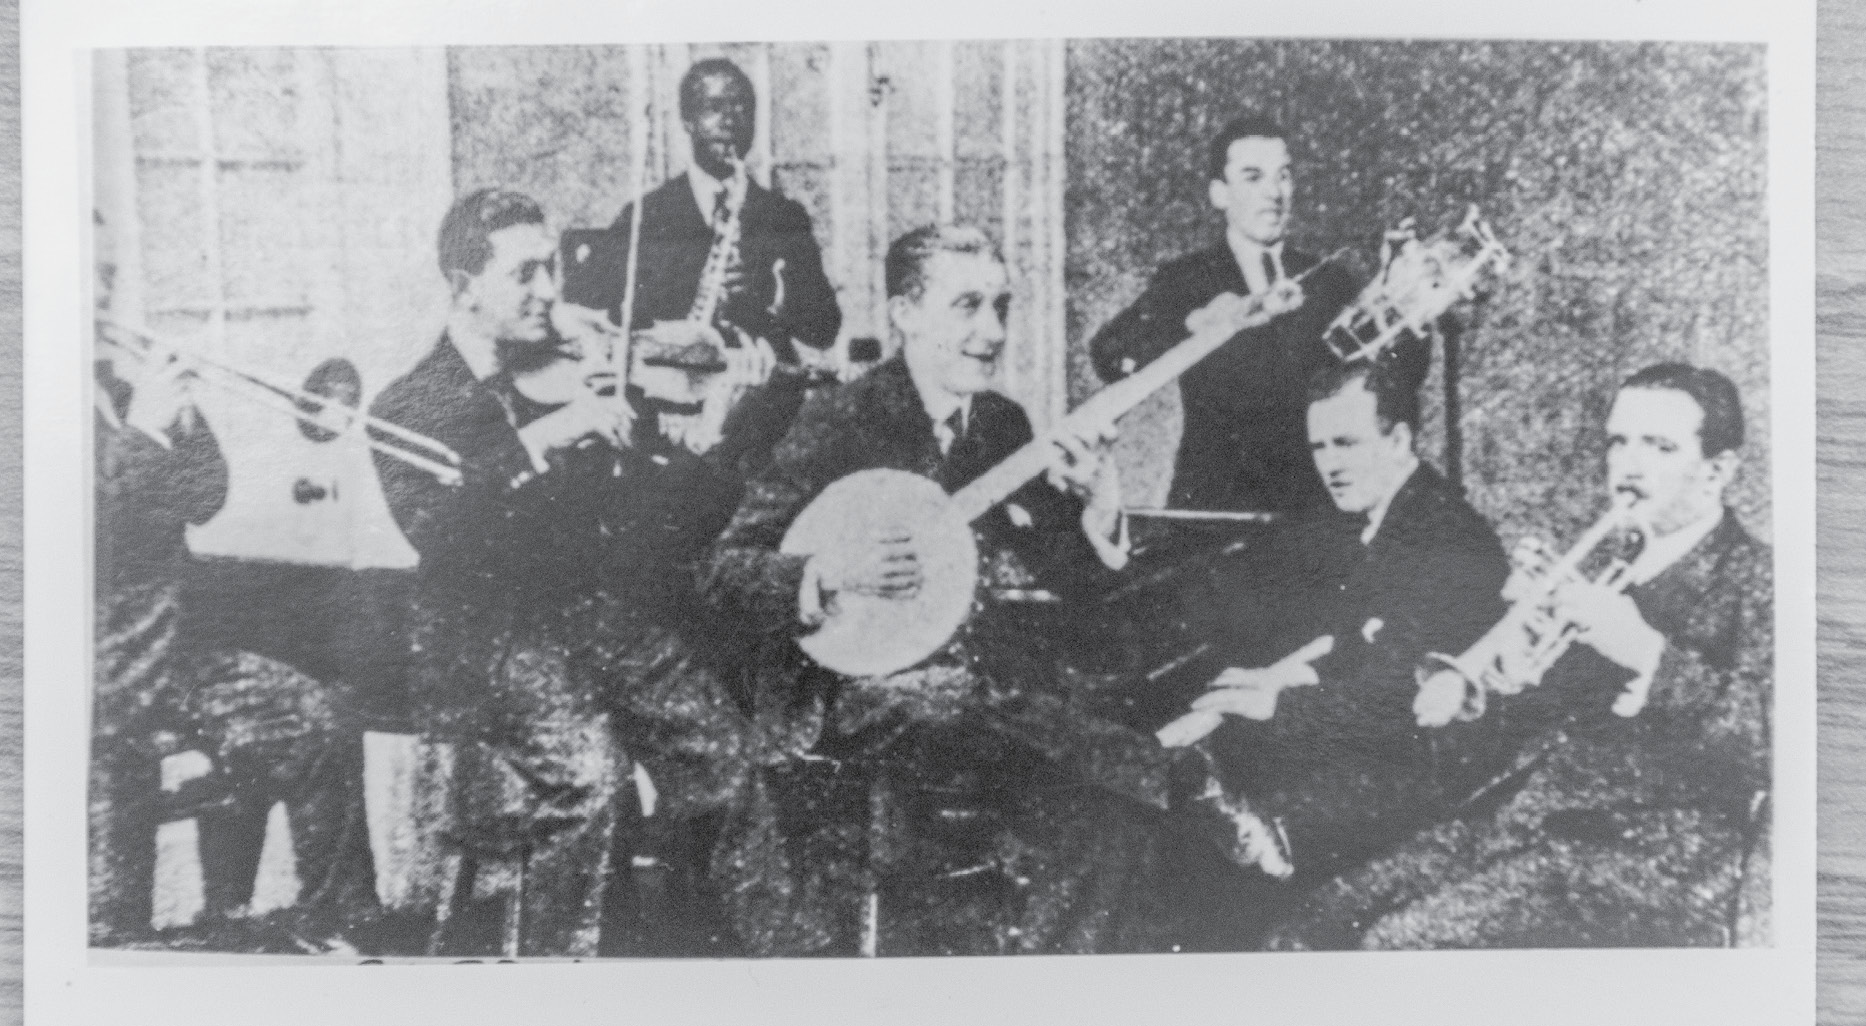 He led a popular dance band, The Queen's Dance Orchestra (pictured here in May 1921), which cut several records.